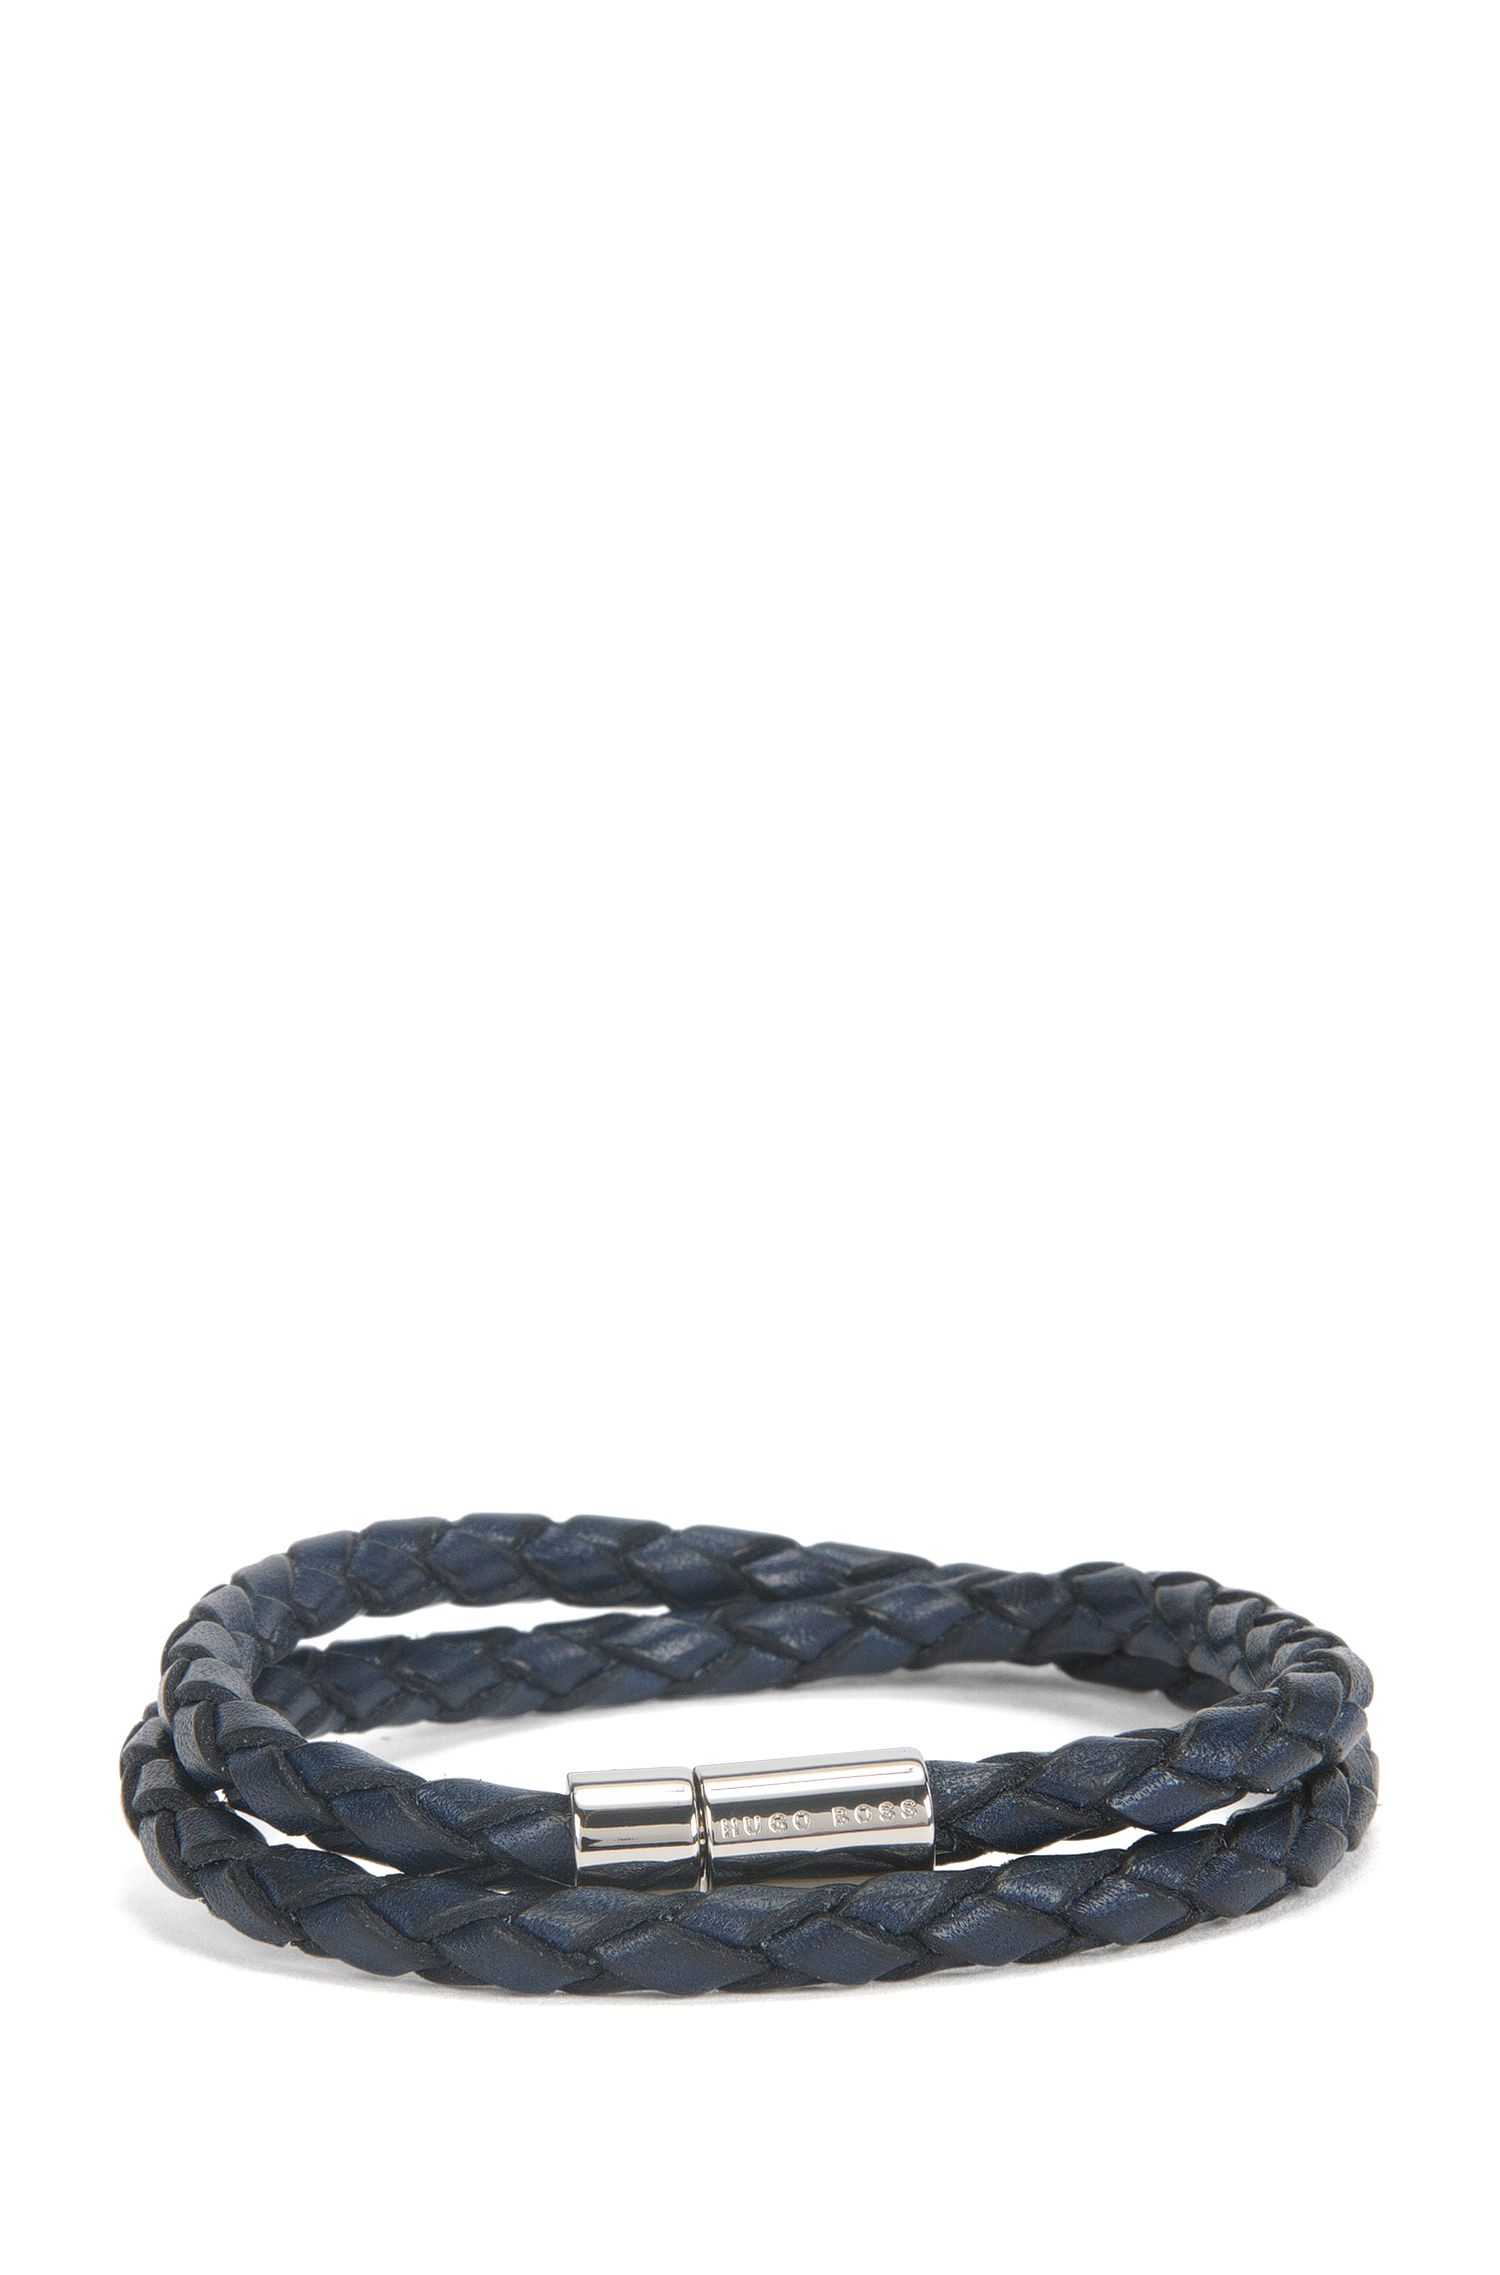 Braided leather bracelet with snap metal closure